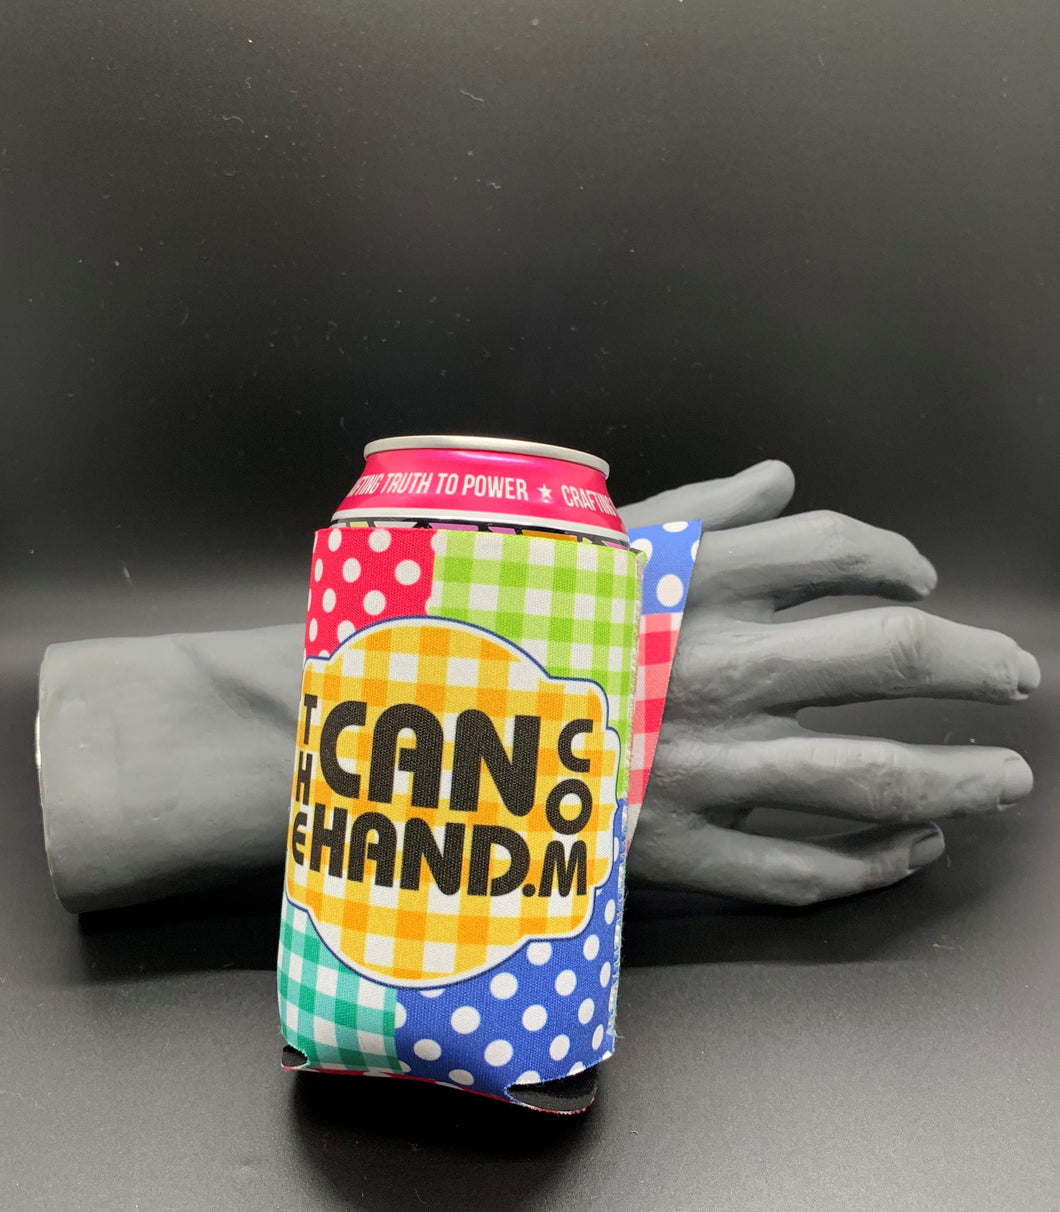 The Can Hand - It's A Parent, You Need Help Edition,